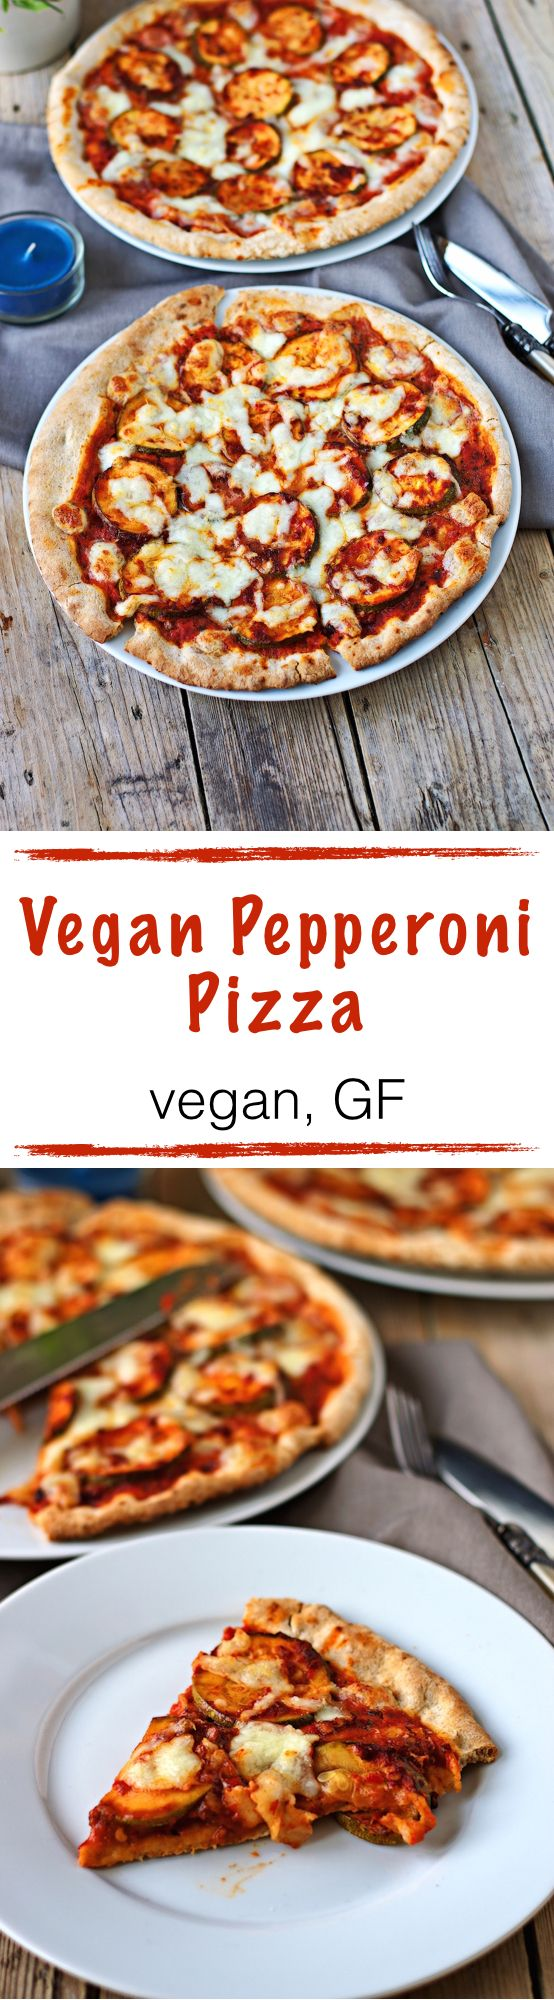 "The wait is over. Here is the runner-up of last weekend's poll: A vegan and gluten free Pepperoni Pizza. It's not-so-secret trick is making spicy marinated zucchini slices - ""zucchironi"" ;) It's really easy to make and your tastebuds will love it."